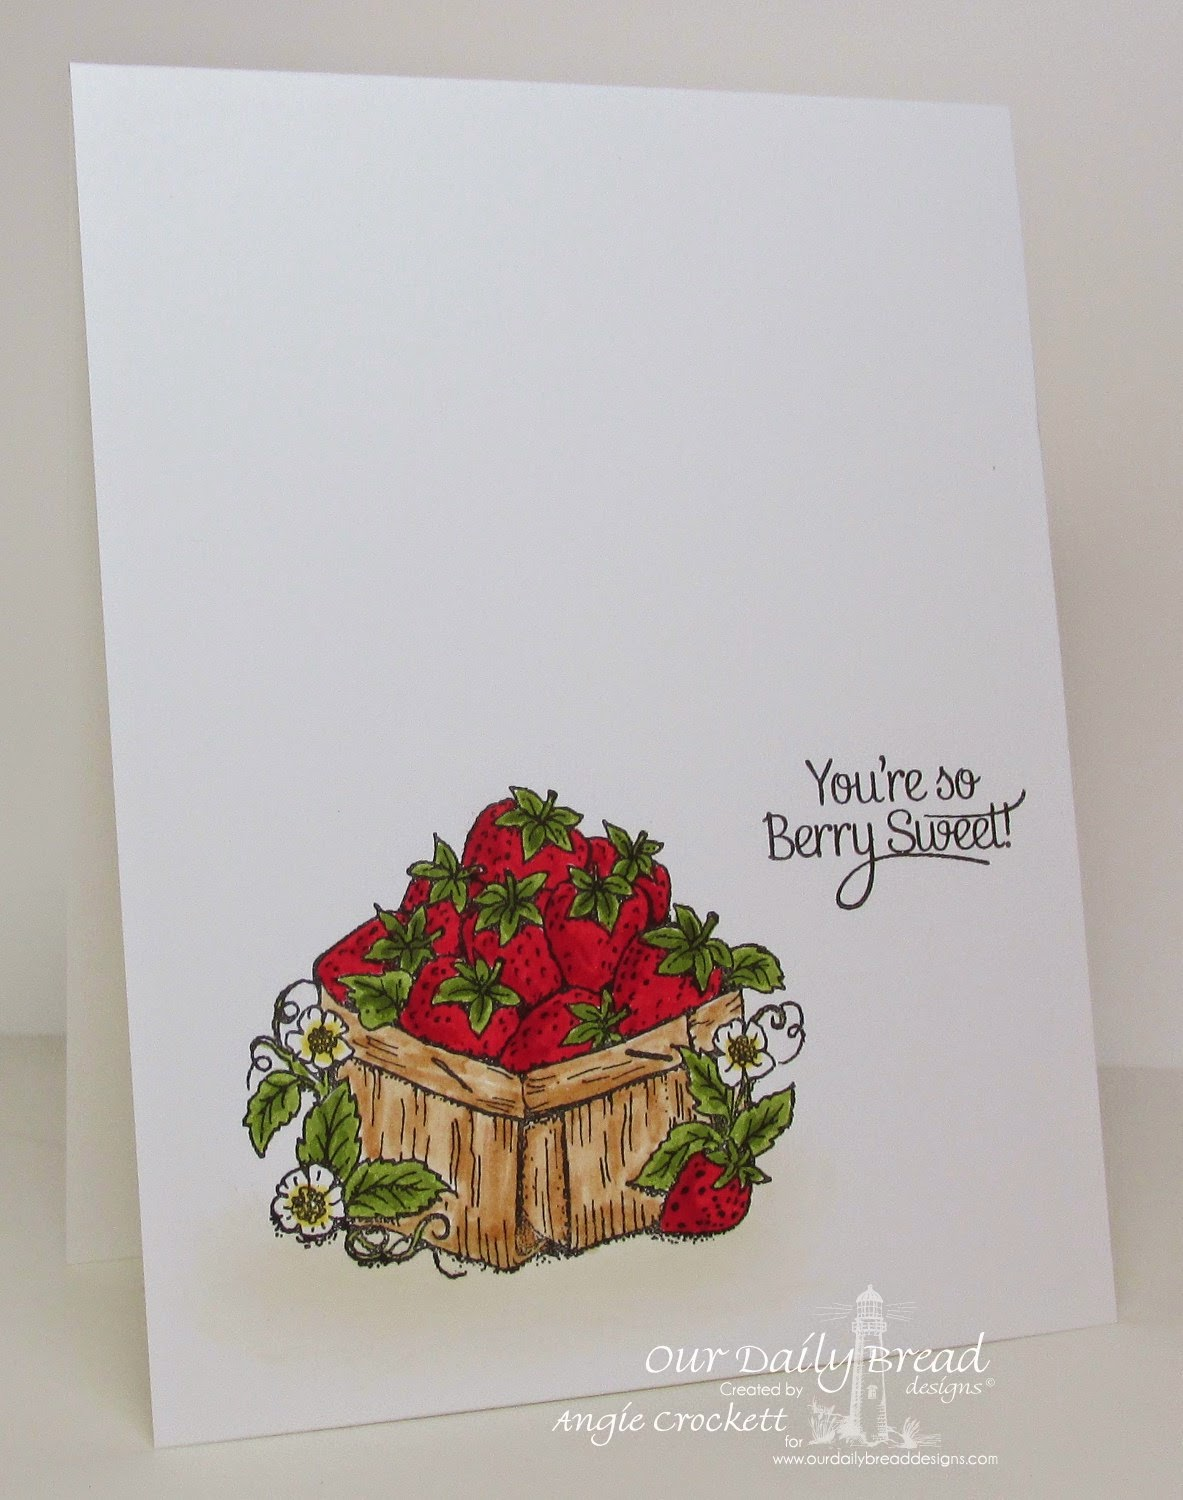 ODBD Strawberries, Card Designer Angie Crockett